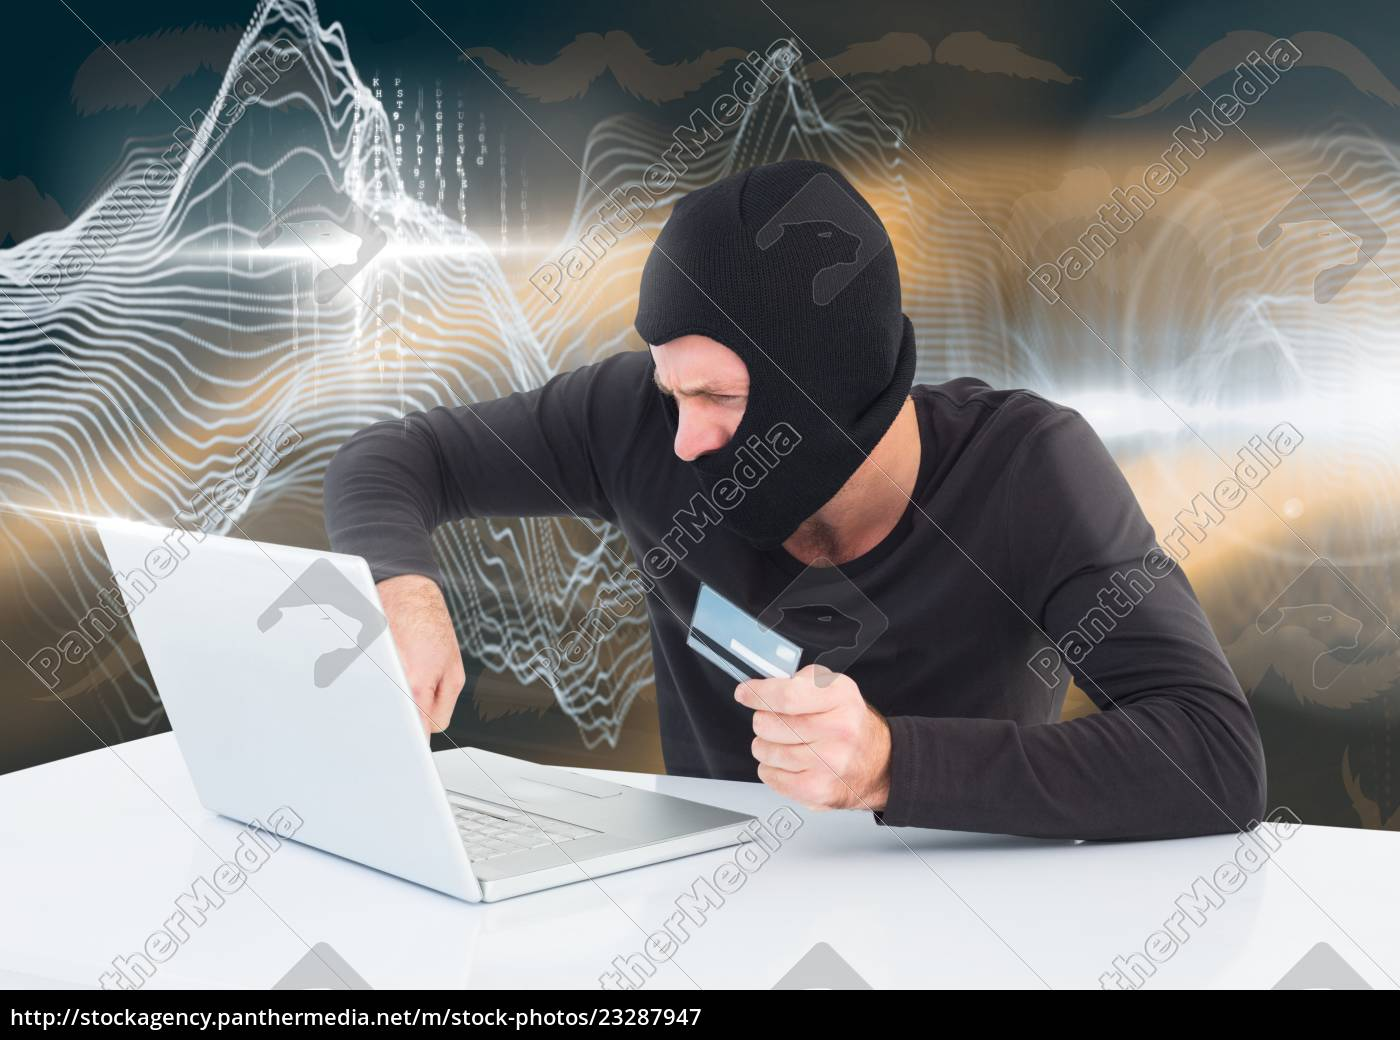 hacker, with, a, credit, card, working - 23287947